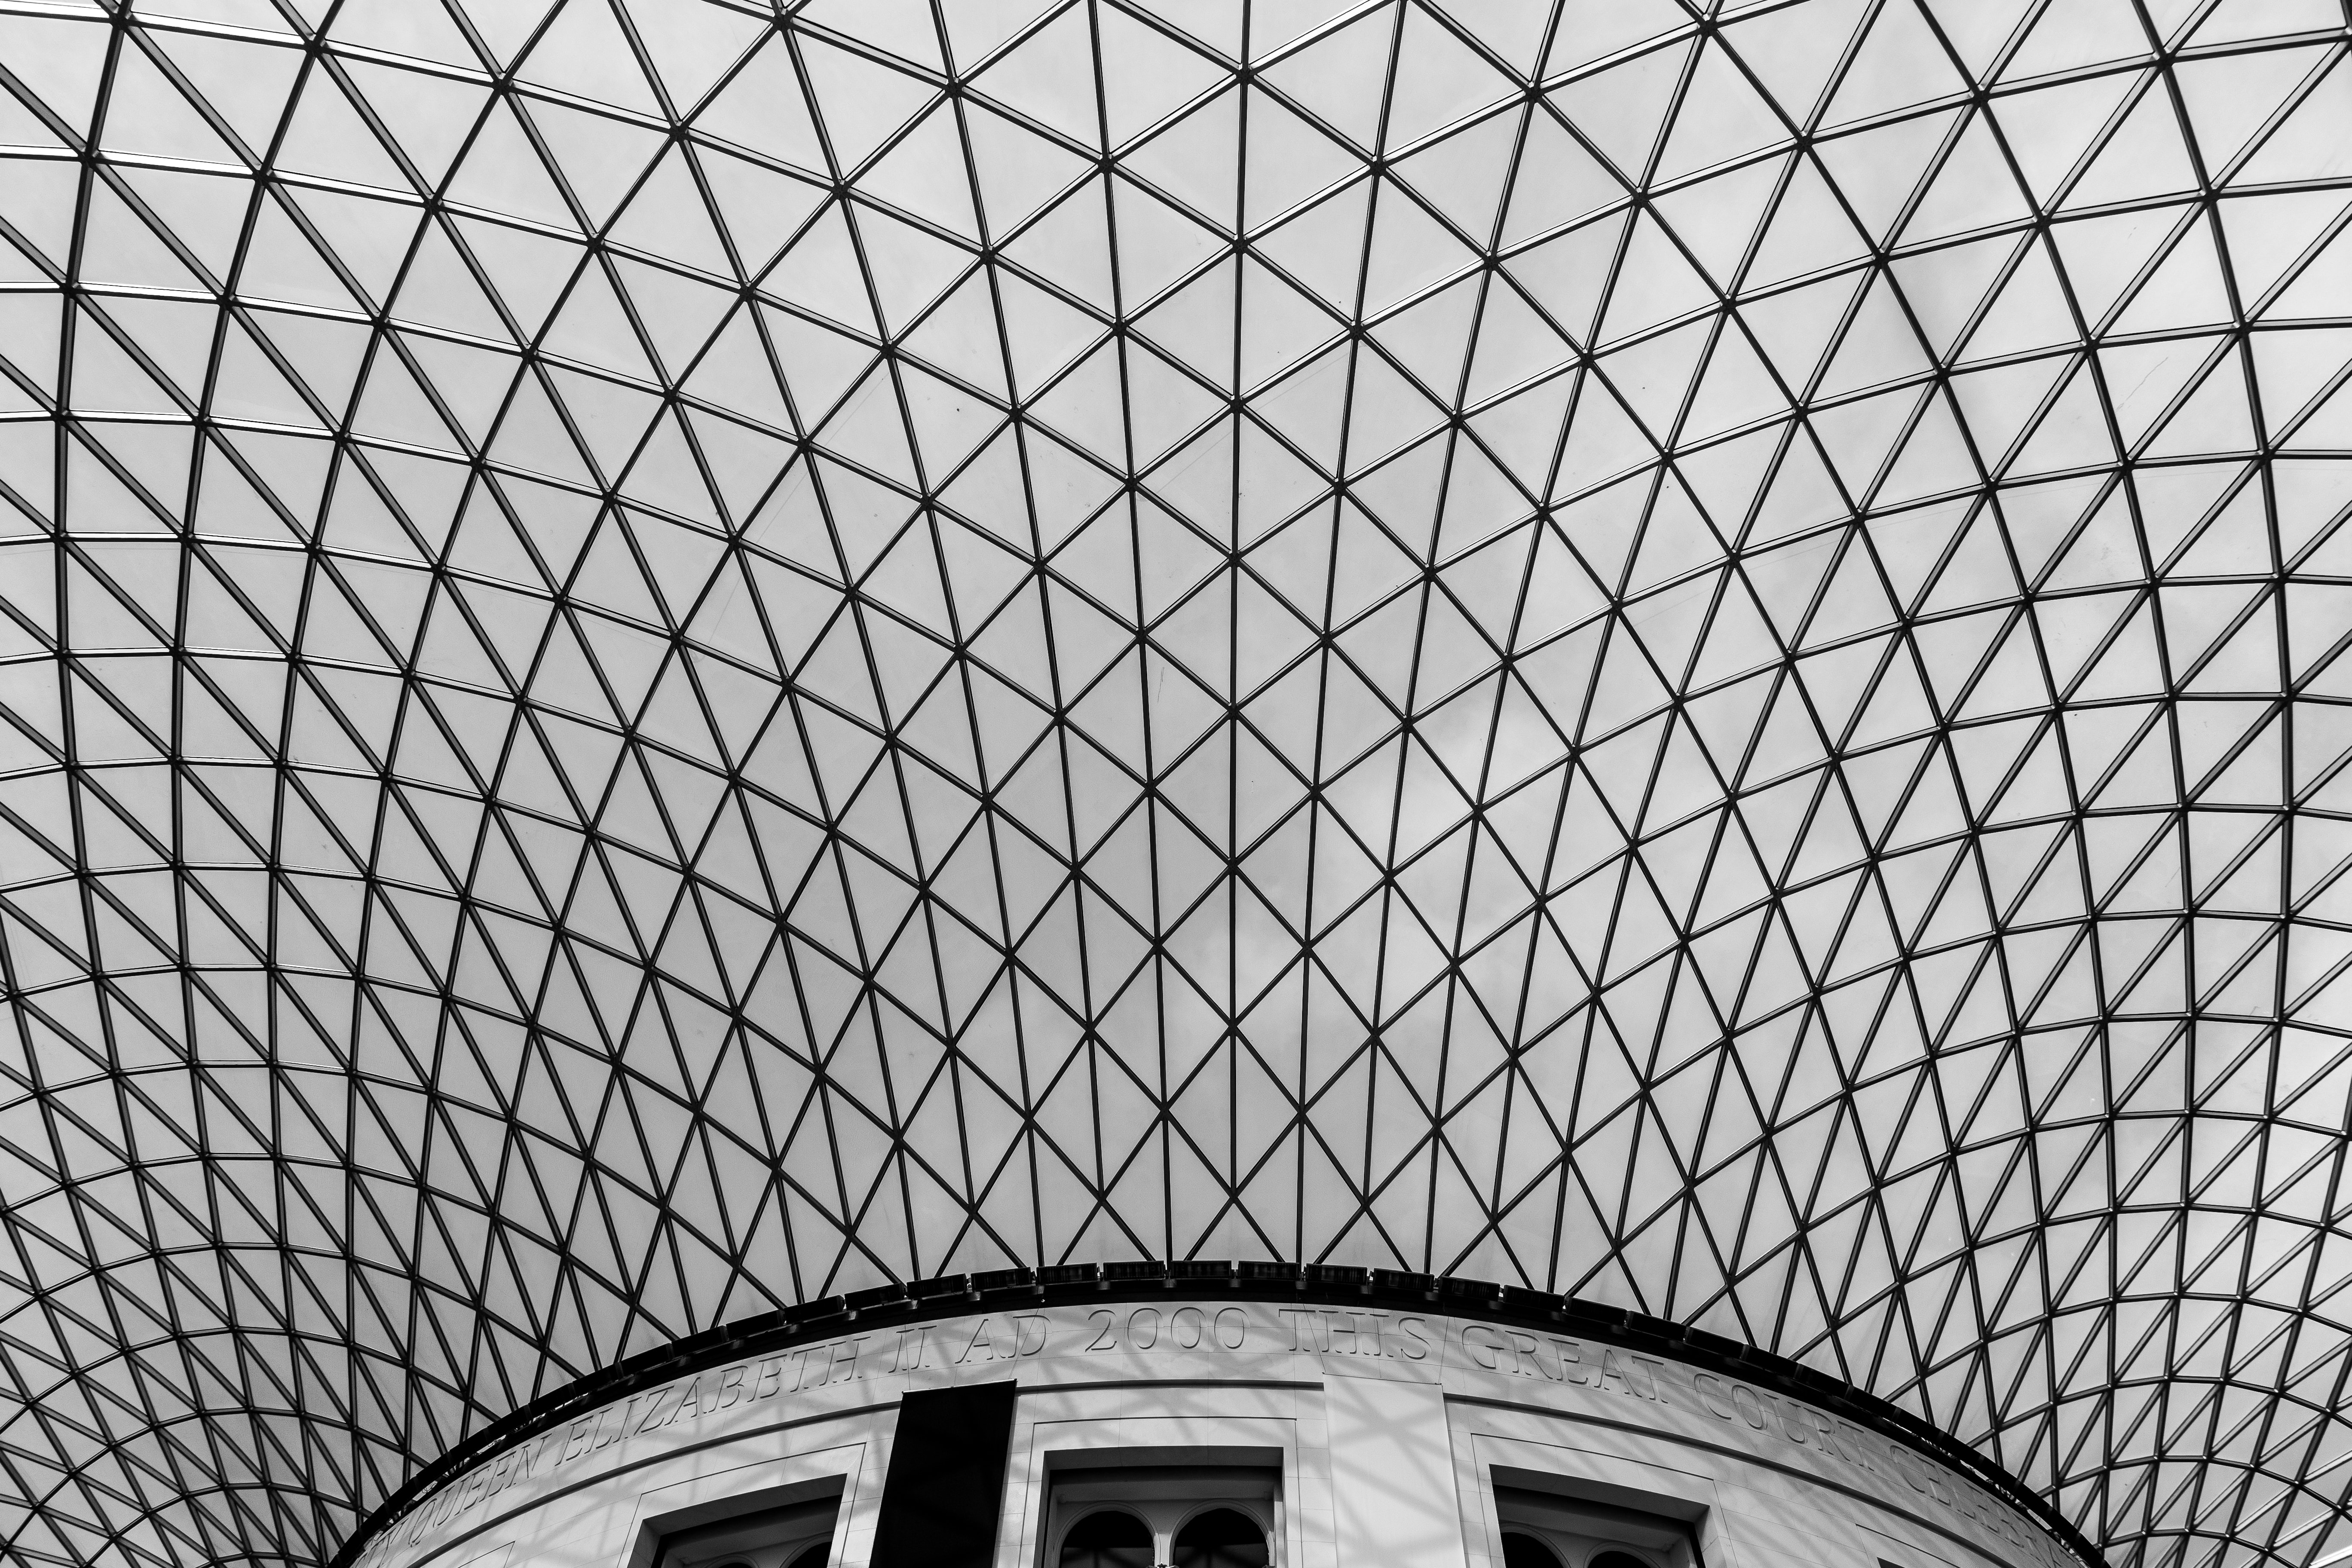 A white latticework ceiling in the British Museum